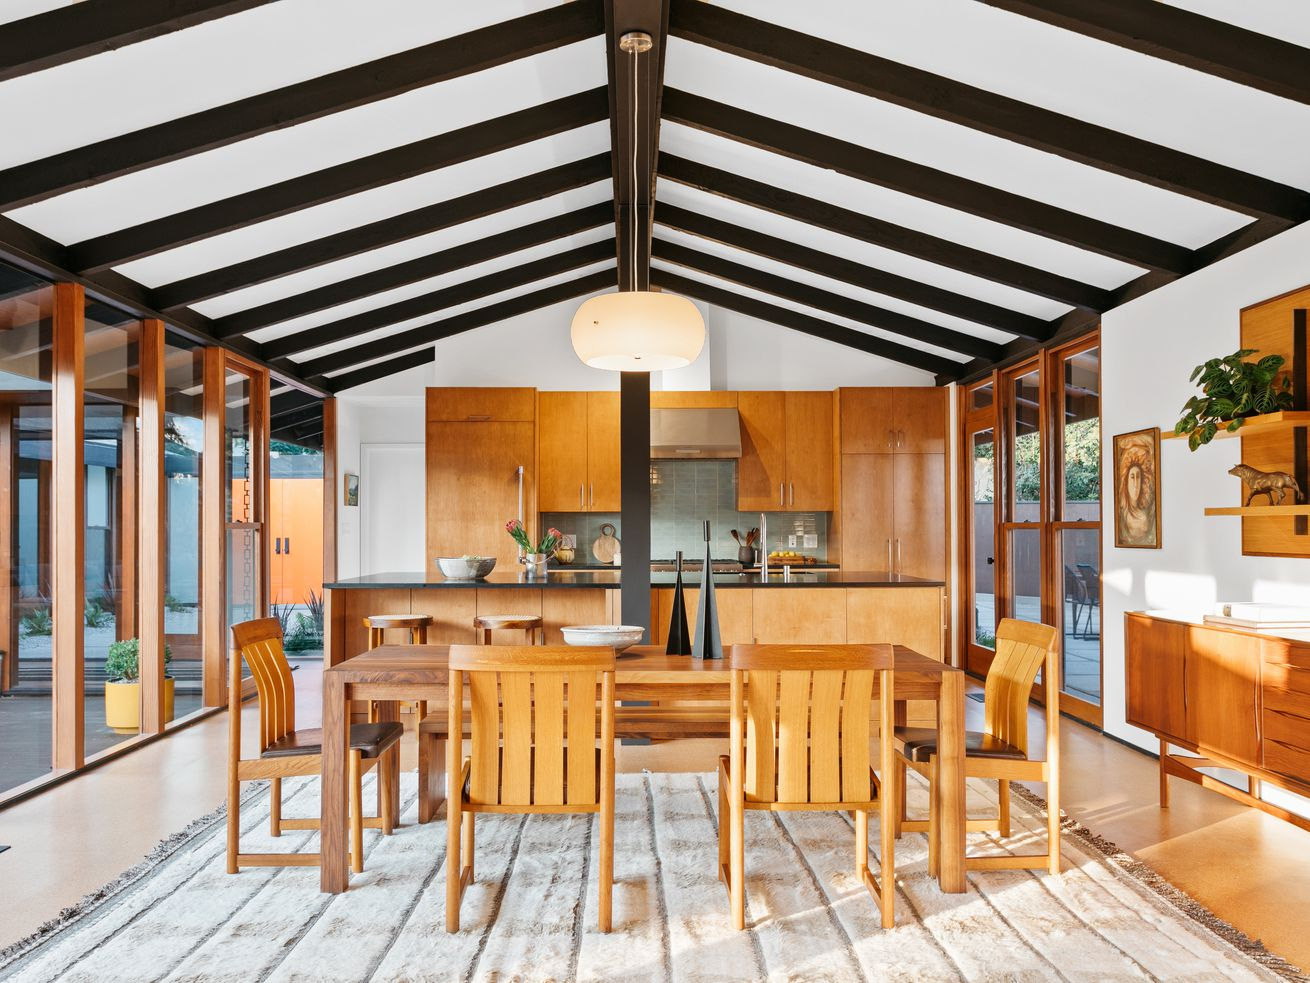 A room with vaulted ceilings and glass walls, furnished with a large wooden table and chairs. Kitchen counter space is visible int the background.